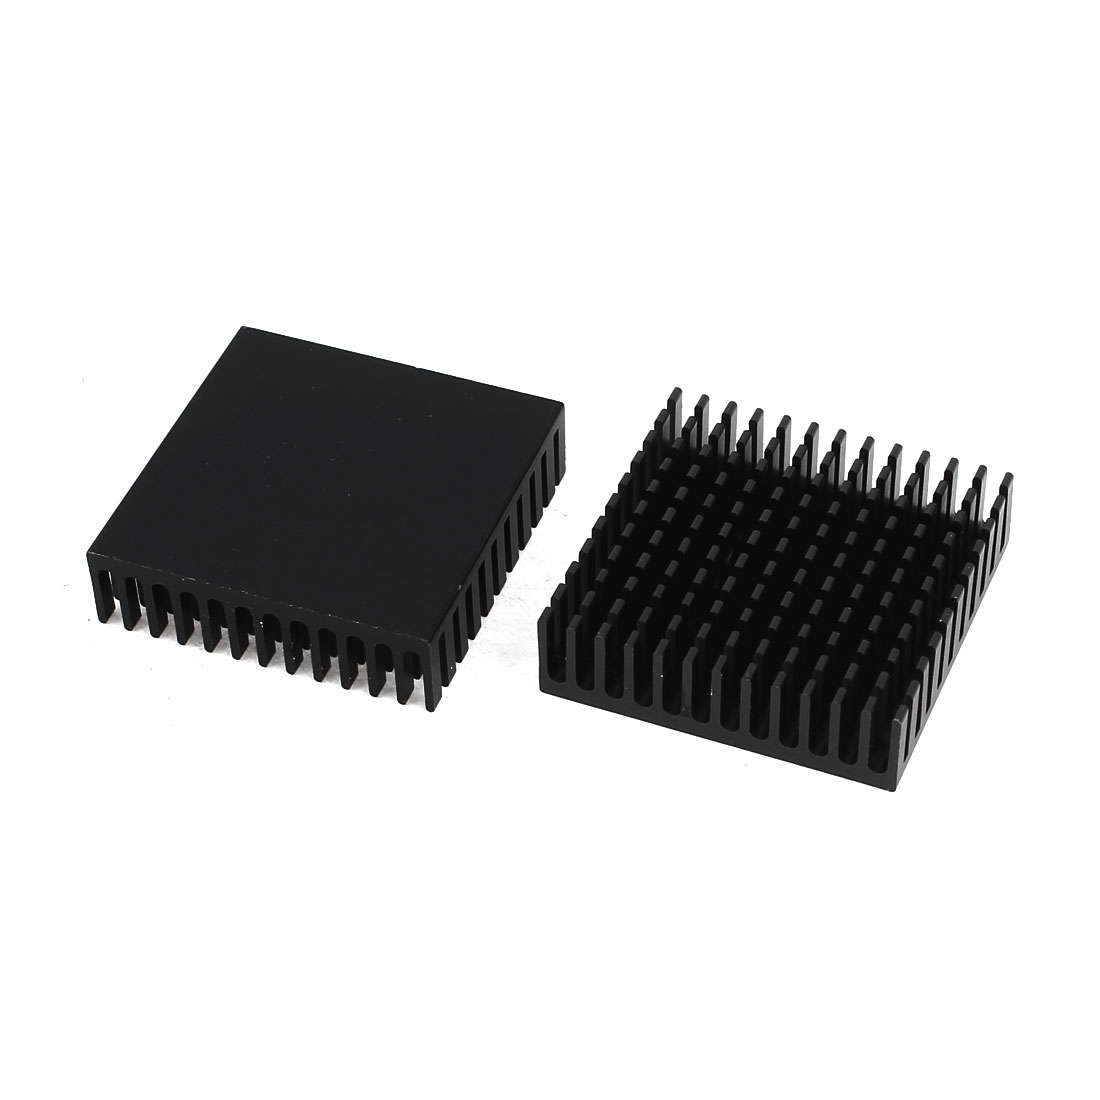 2 Pcs Black Aluminum Radiator Heat Sink Heatsink 40mm x 40mm x 11mm